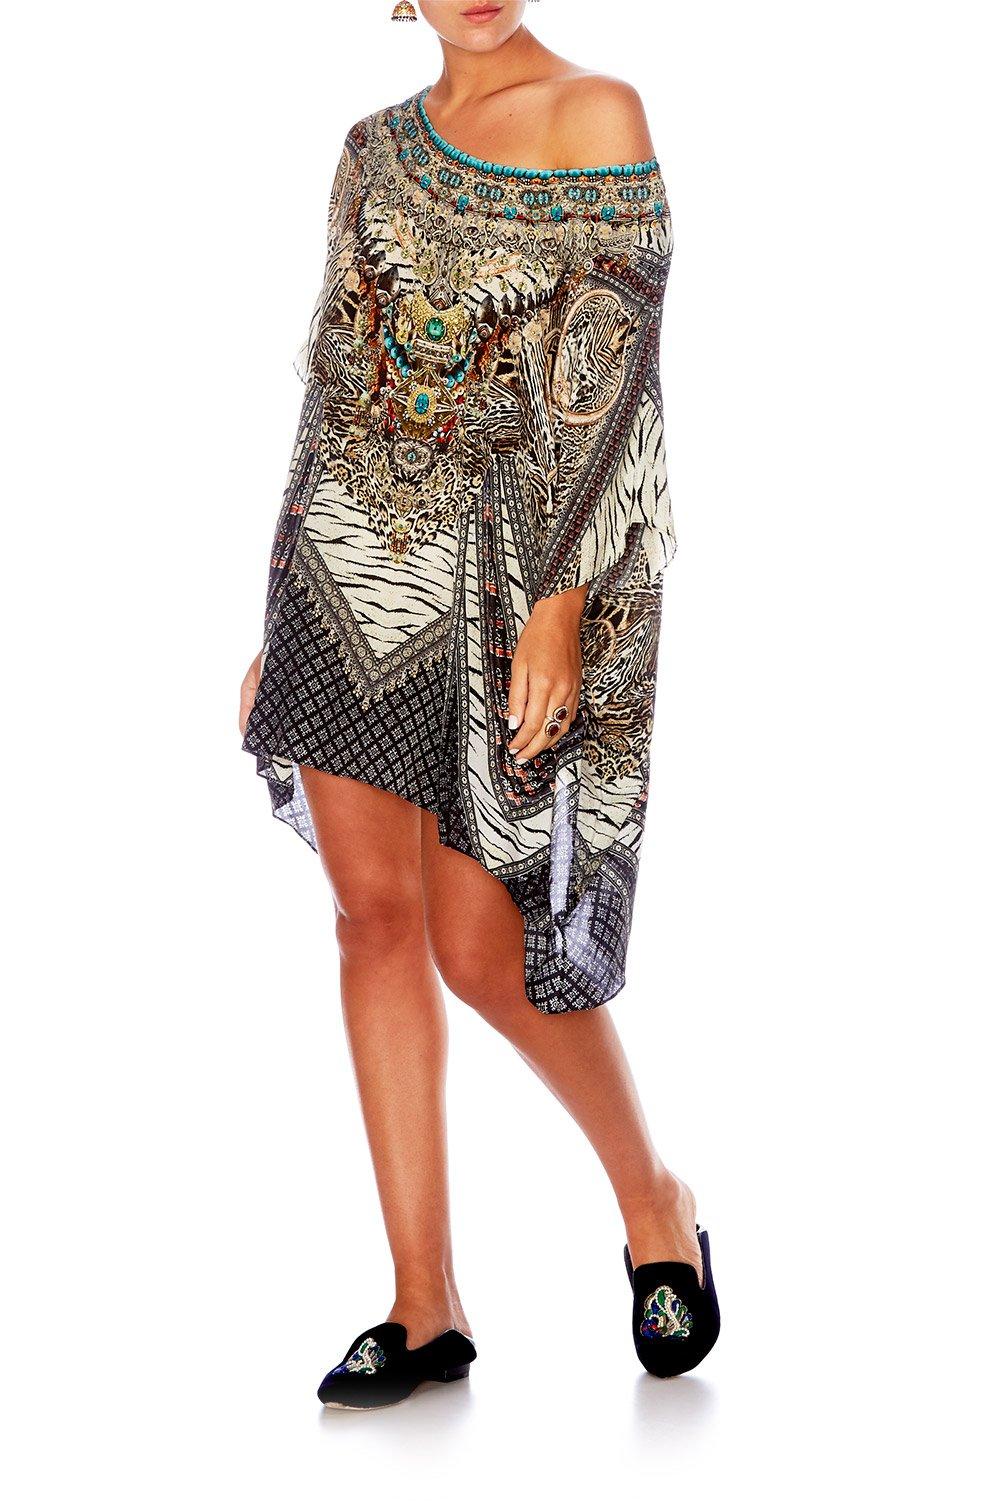 THE BODYGUARD SHORT ROUND NECK KAFTAN